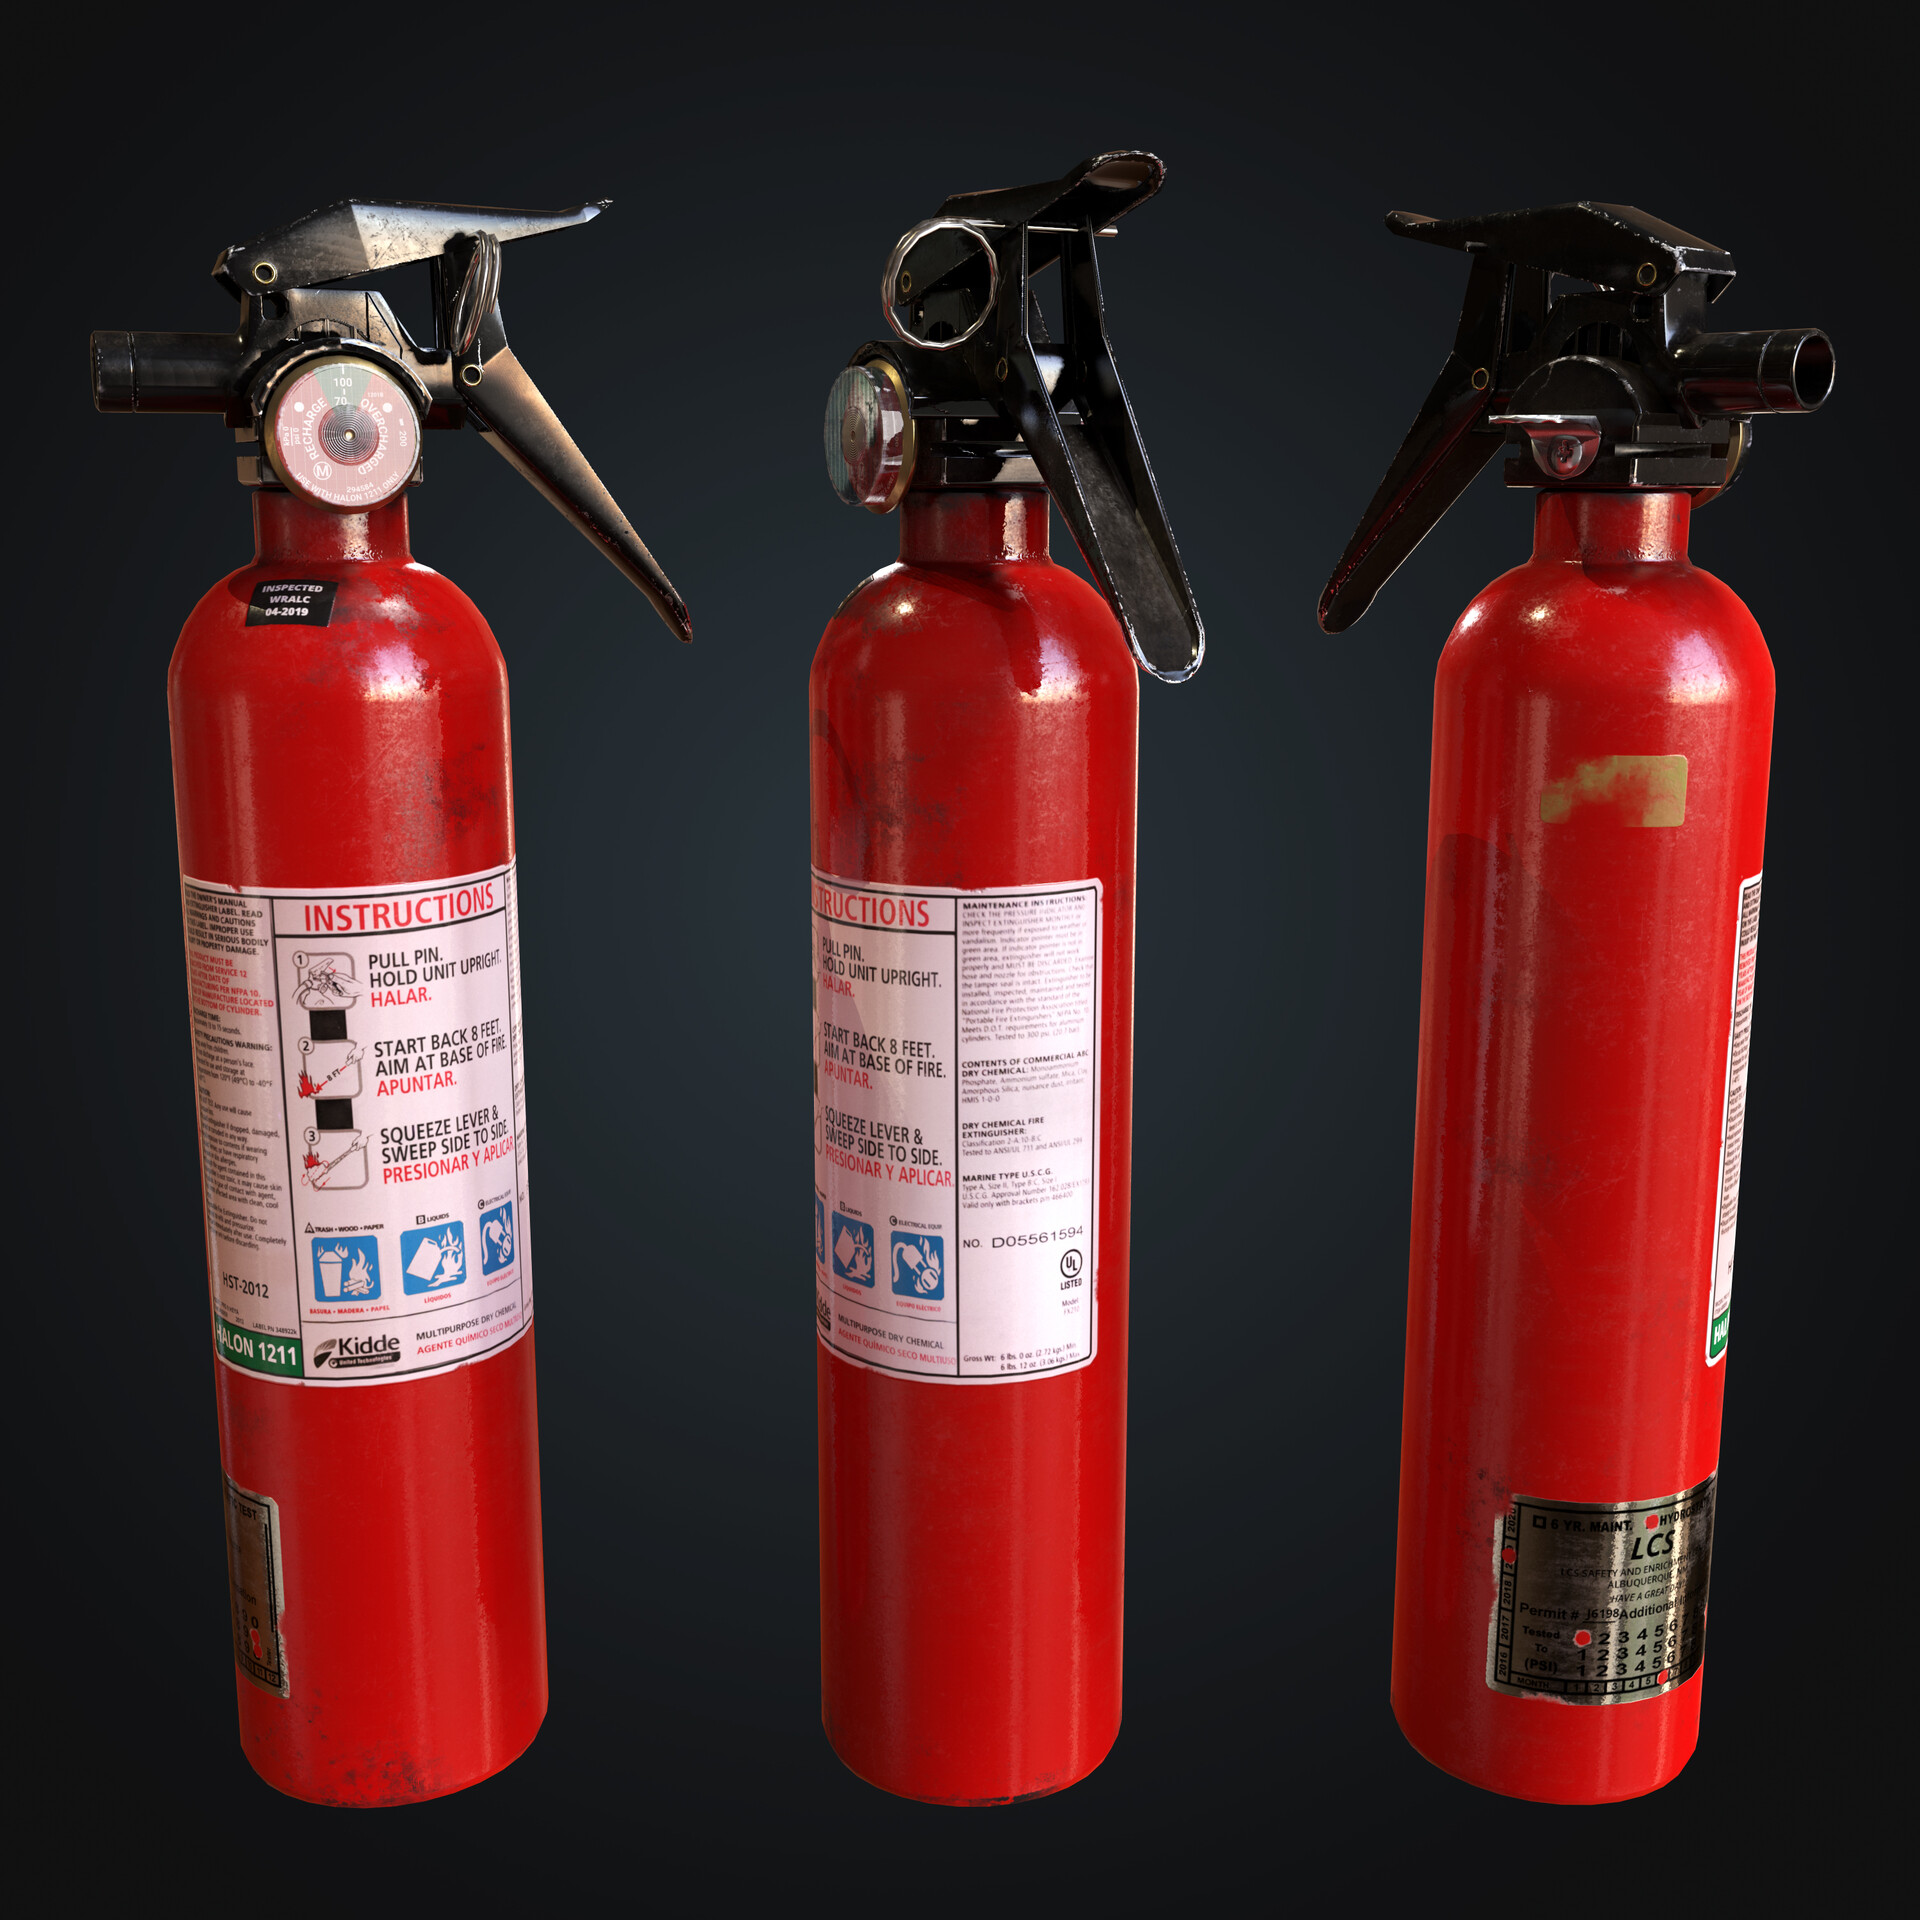 ArtStation - Handheld Fire Extinguisher, Ali Ghadimi